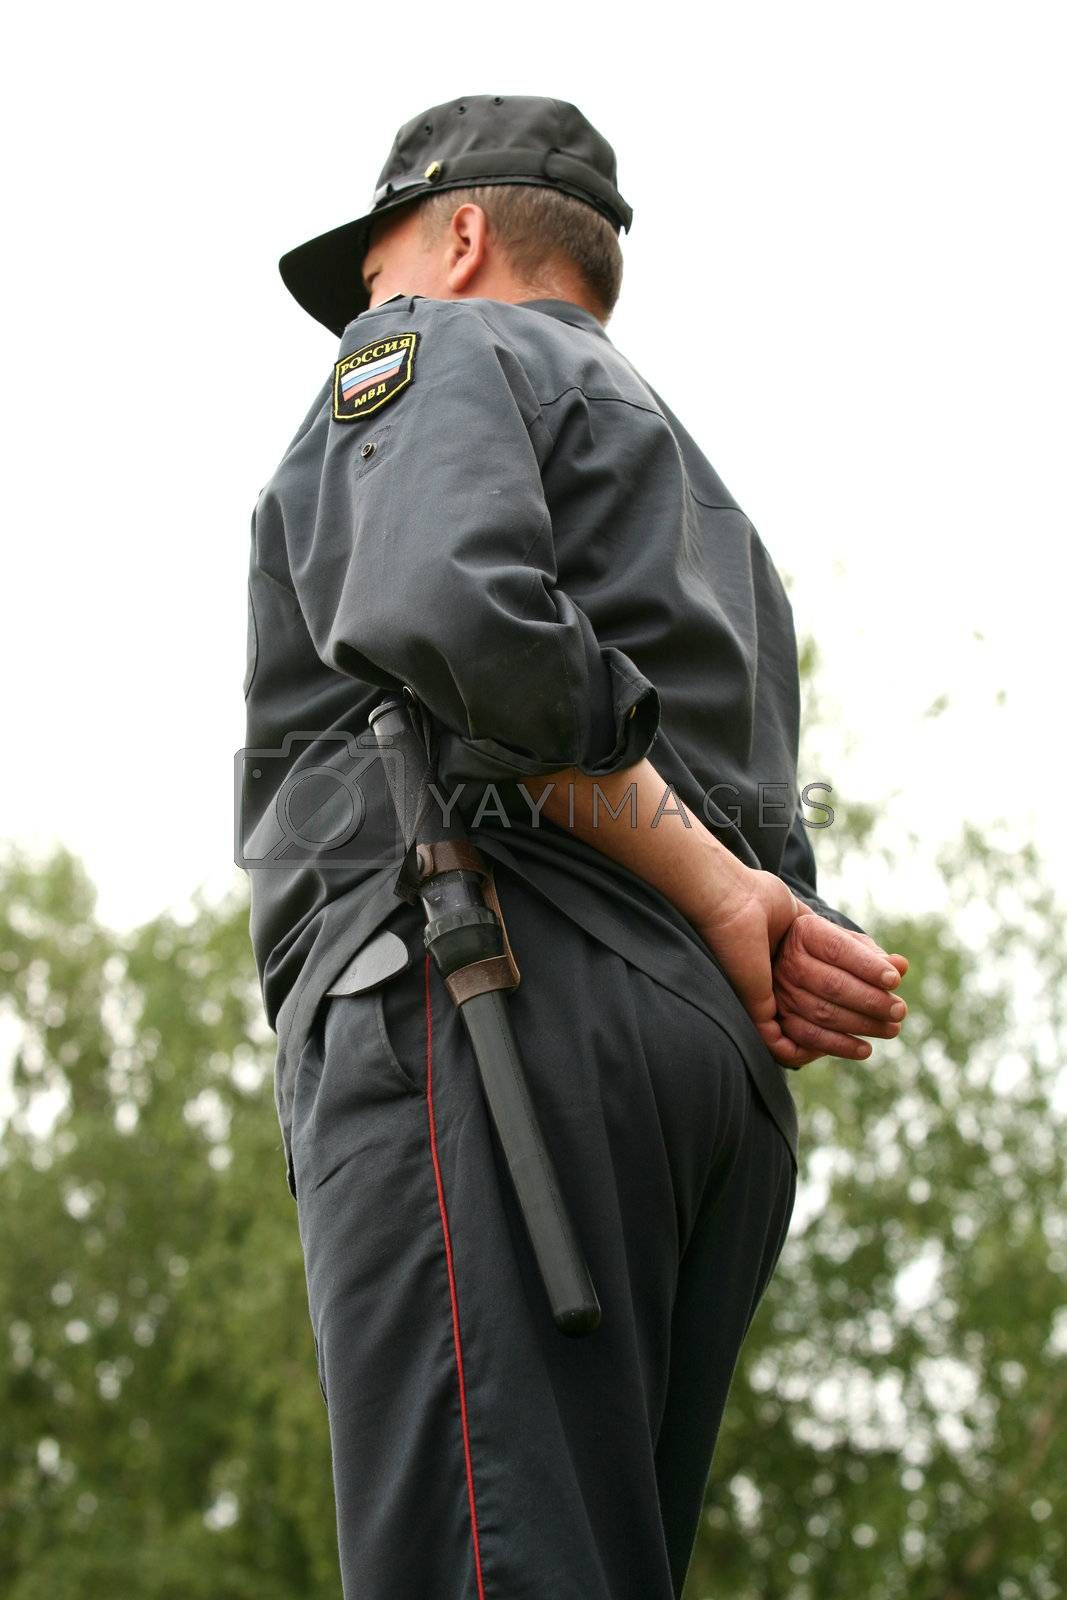 The Russian policeman on work